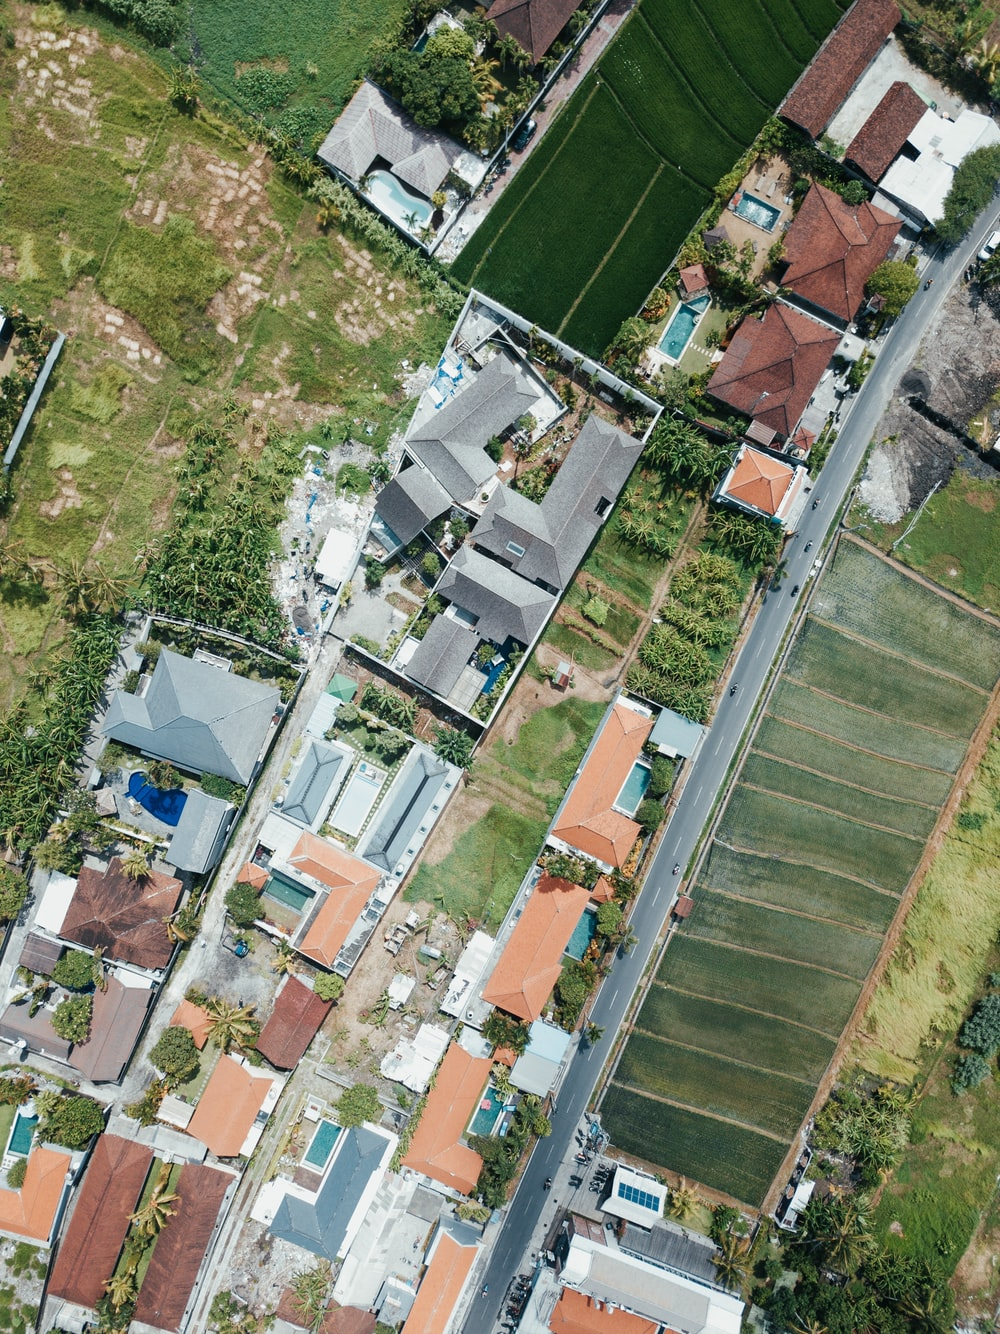 aerial view of houses and trees during daytime